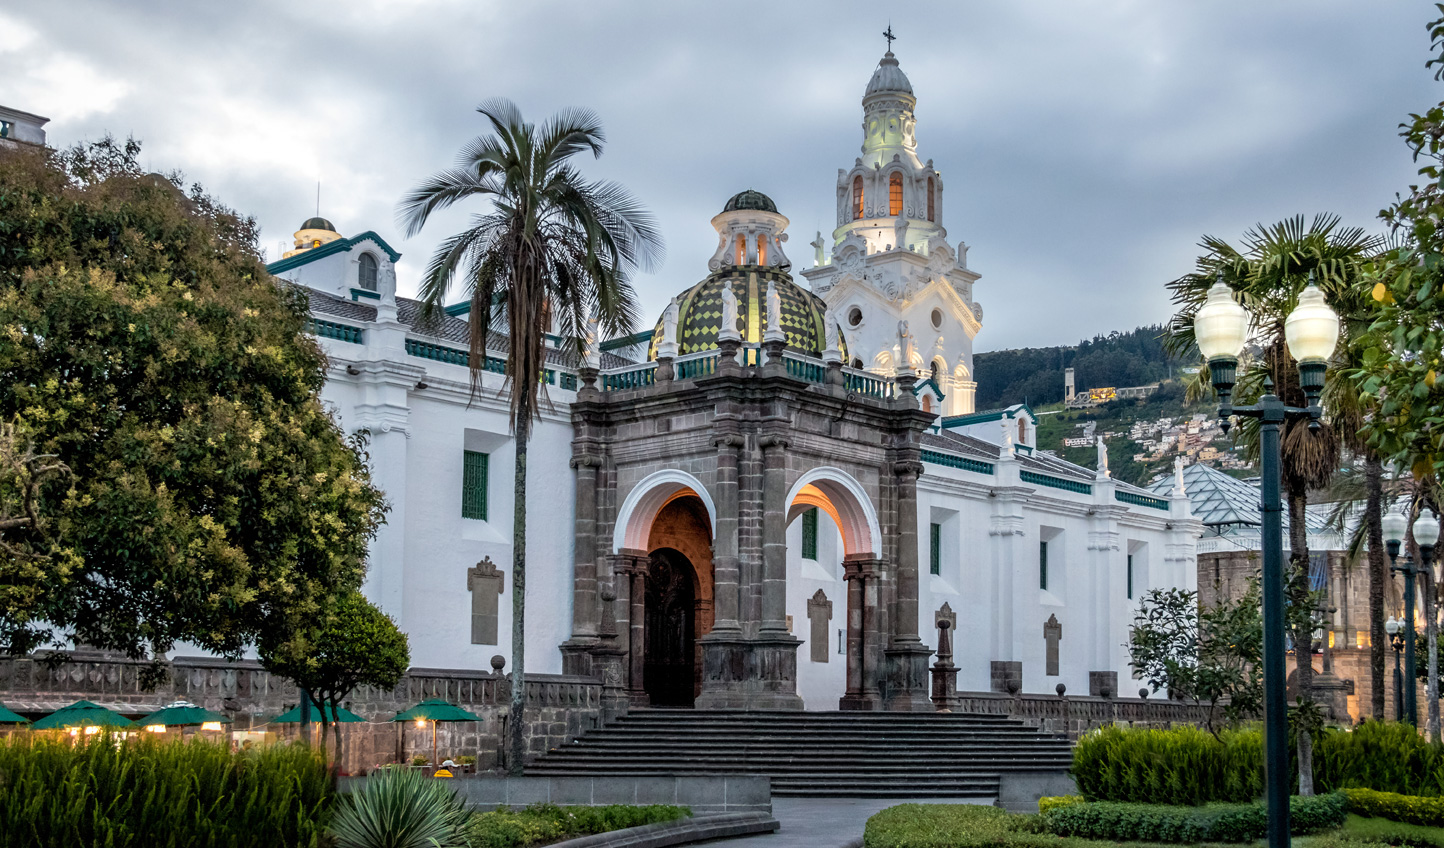 Wander through Quito's Cathedral